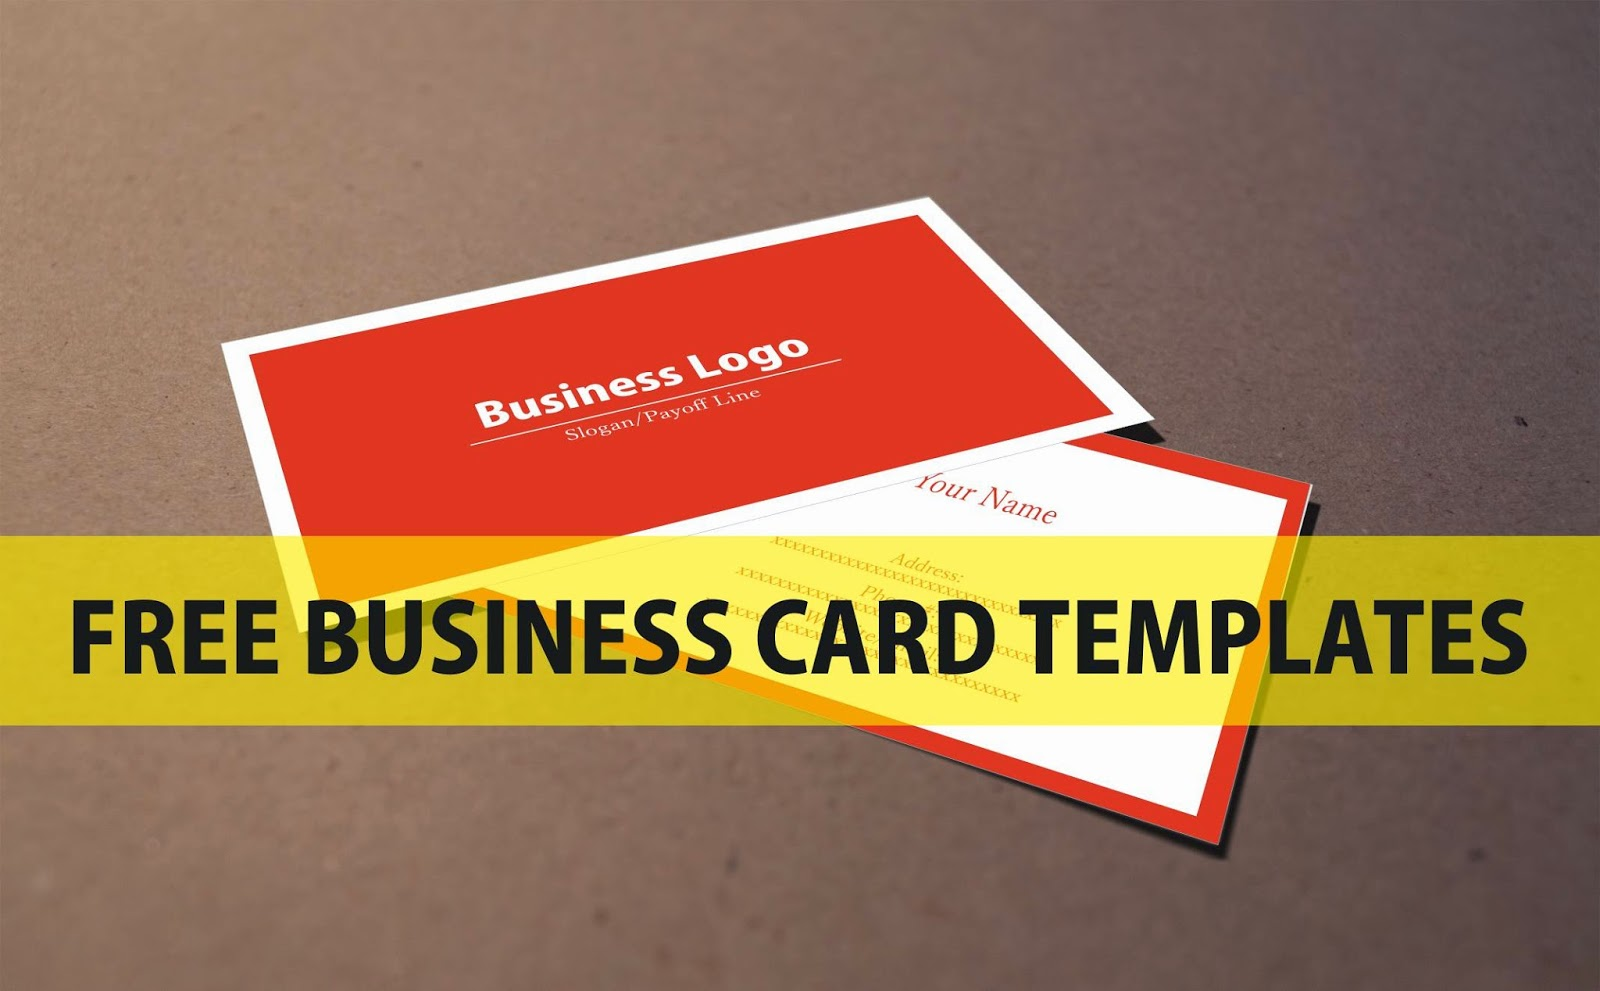 Free business card template download coreldraw file a graphic free business card template download coreldraw file reheart Gallery